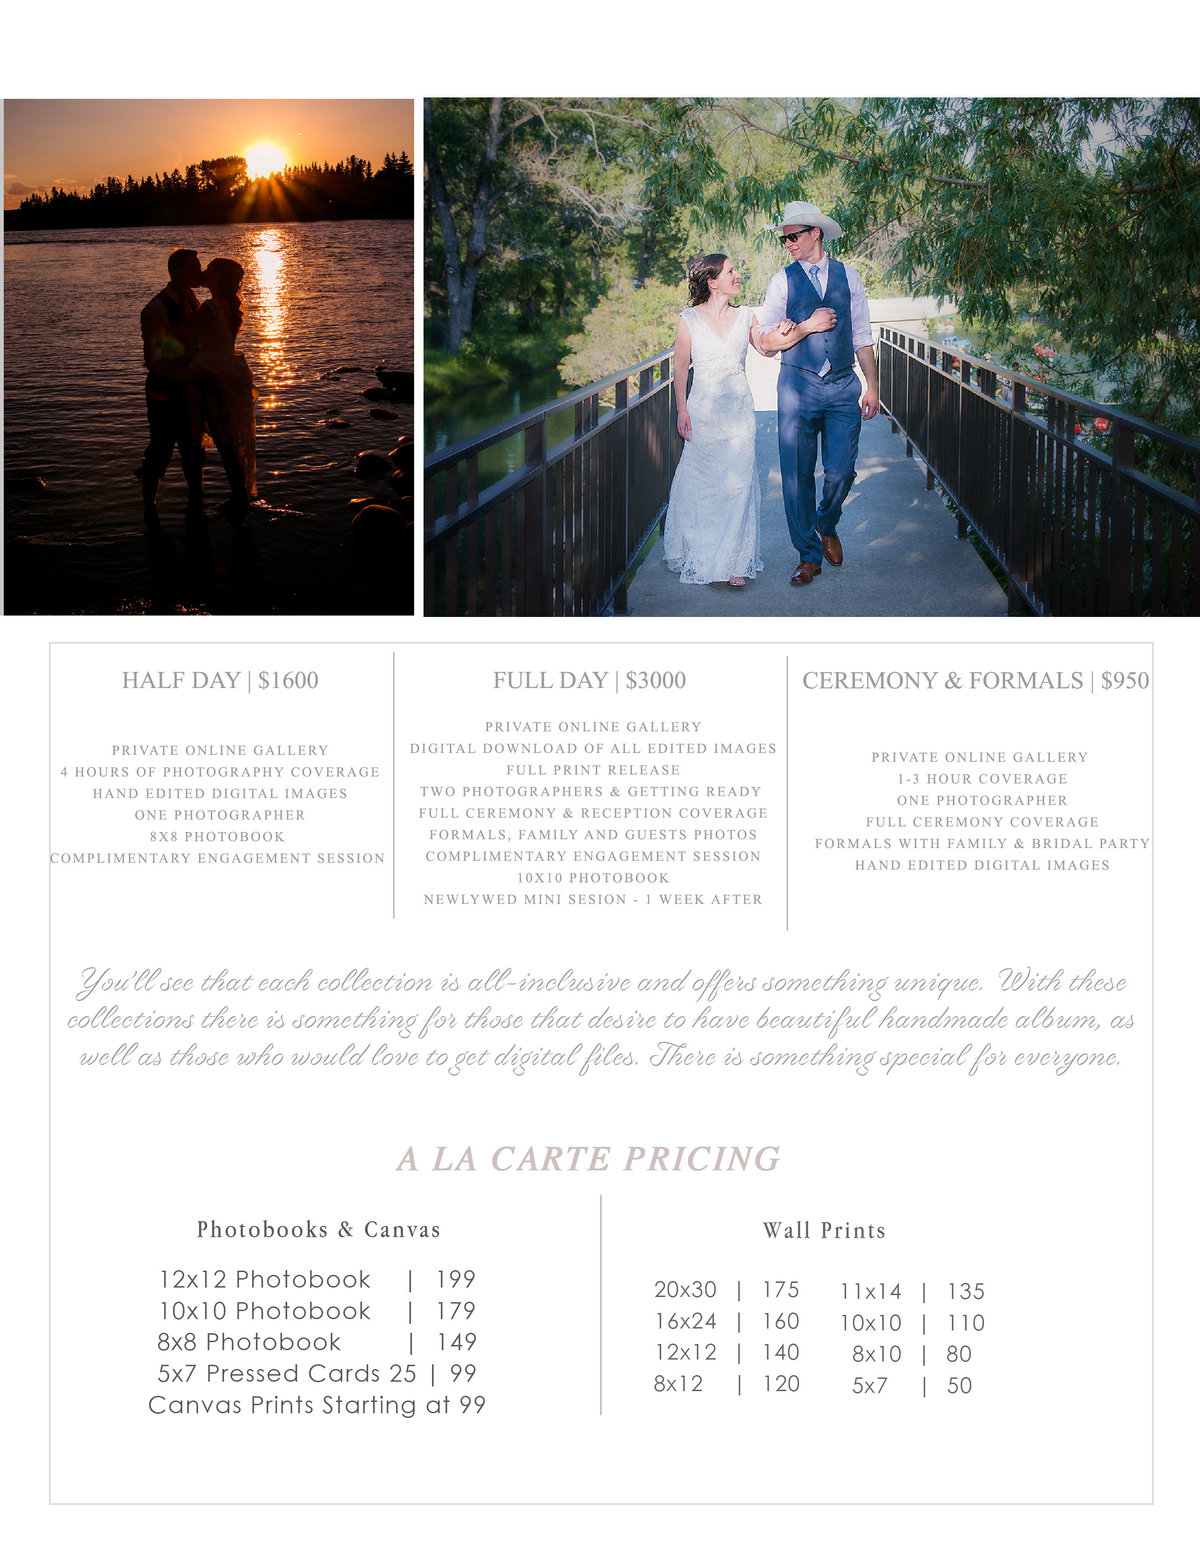 Pricing Menu Weddings